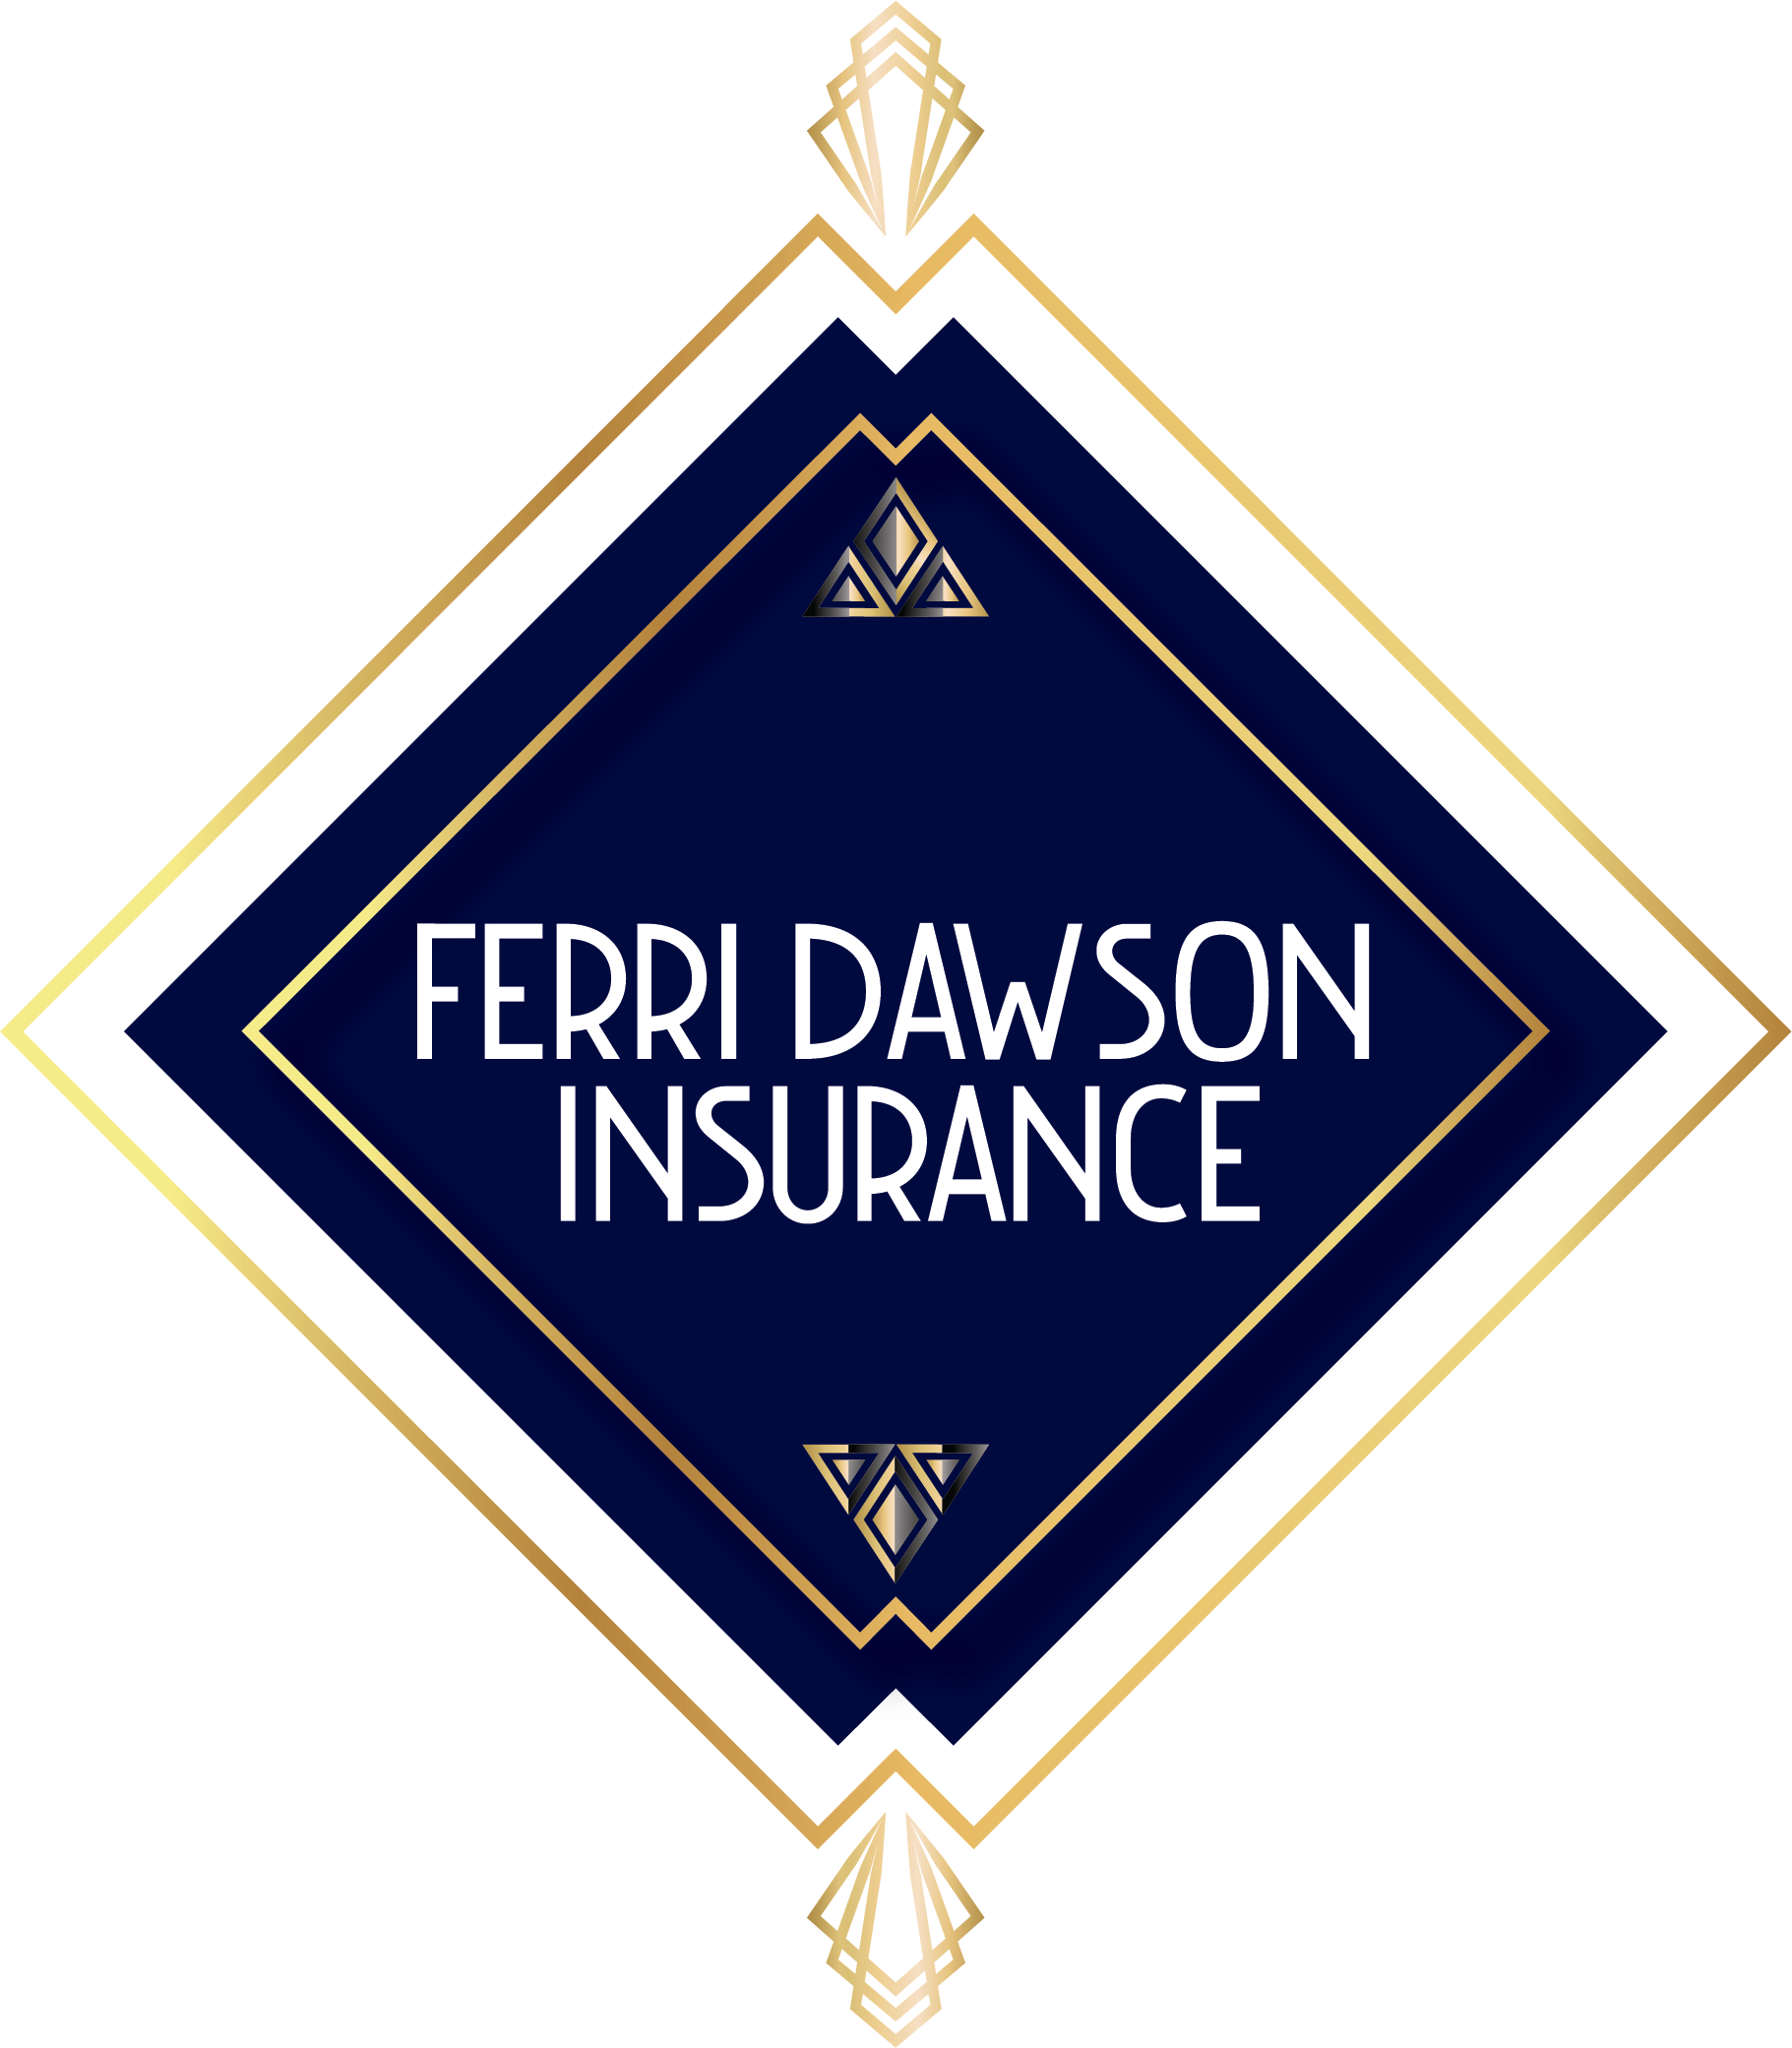 Ferri Dawson Insurance Group